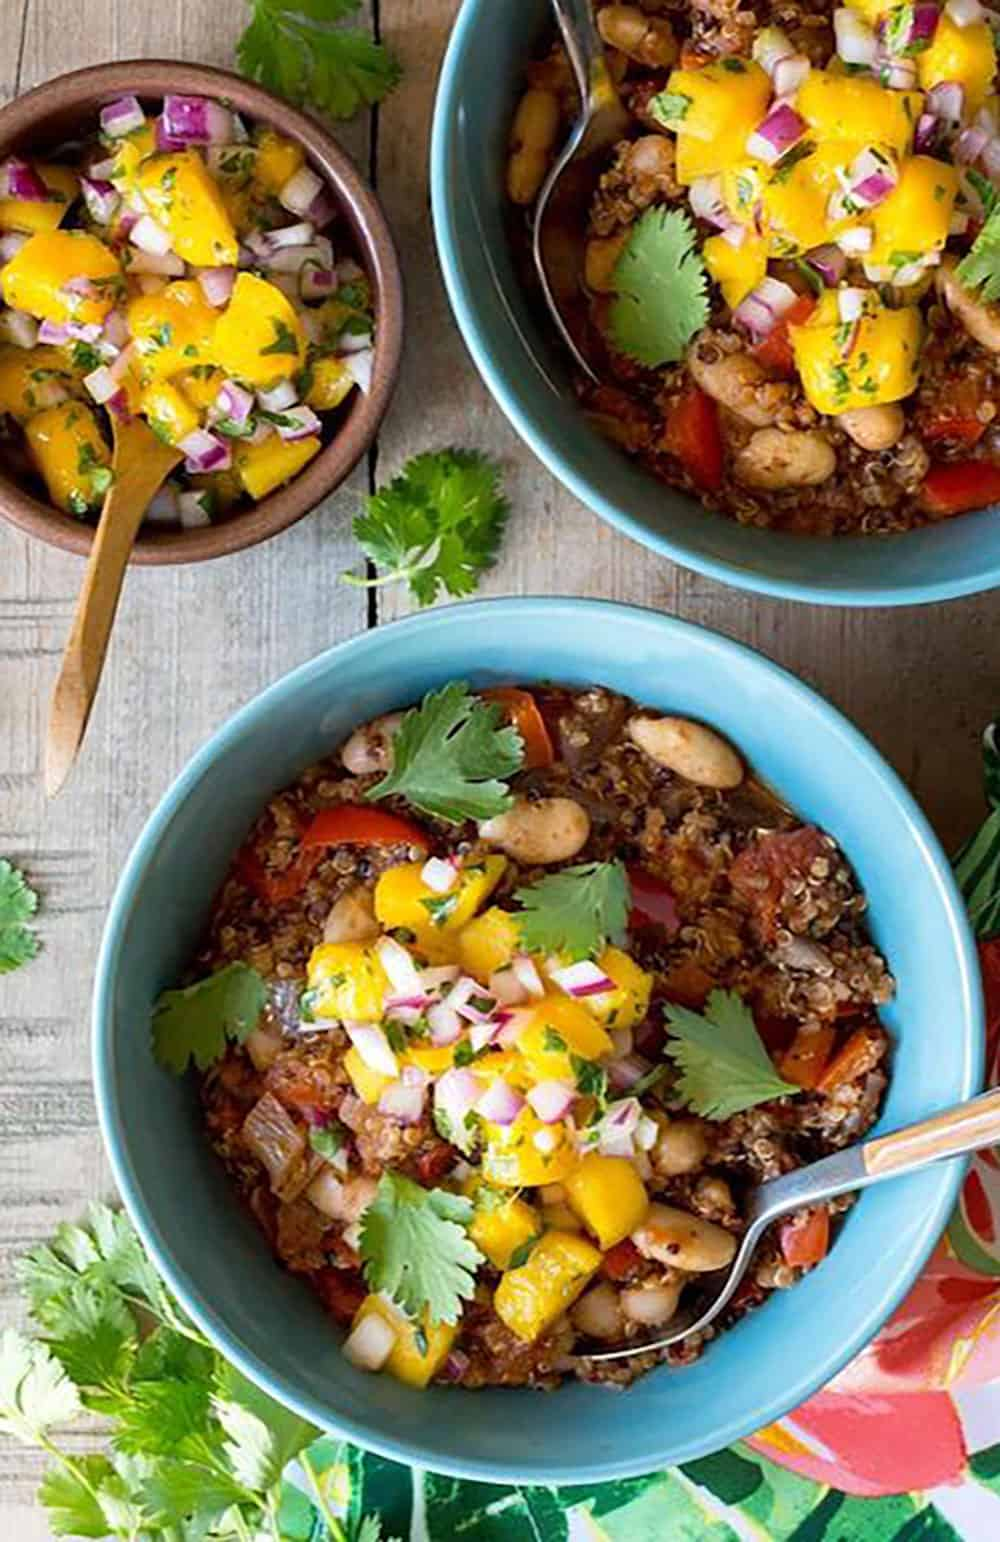 Jamaican Jerk Chili in 3 bowls